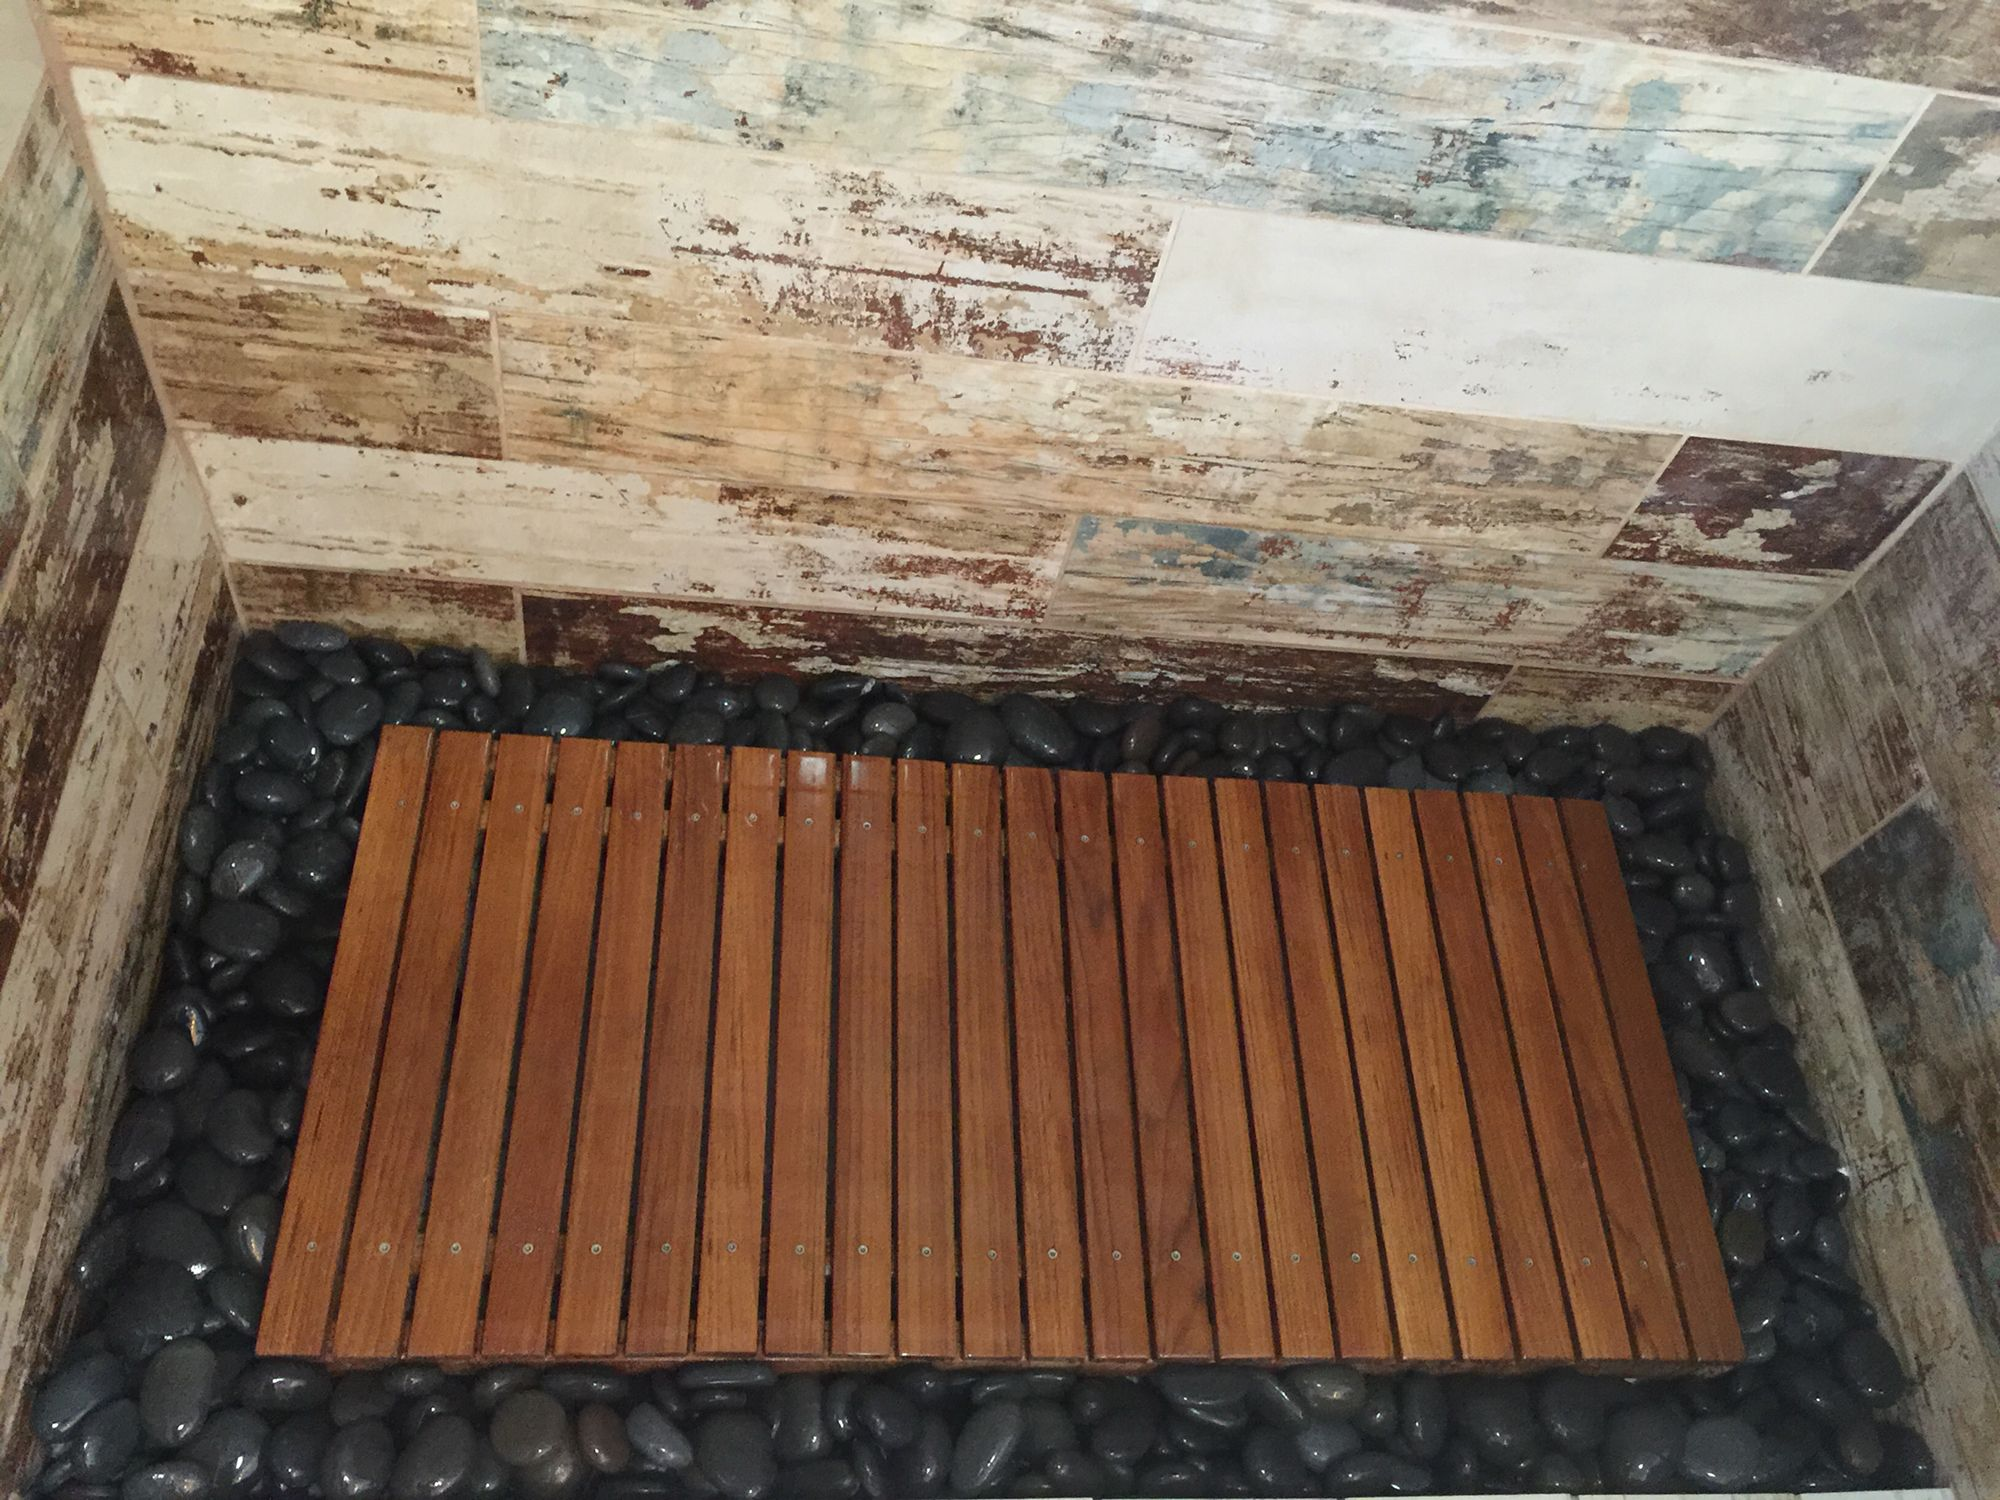 Teak Wood Shower Floor Surrounded By River Rock Walls Tiles In Ceramic Bar Wood Tile Designed By Krysten Pet Shower Floor Teak Shower Floor Shower Floor Tile